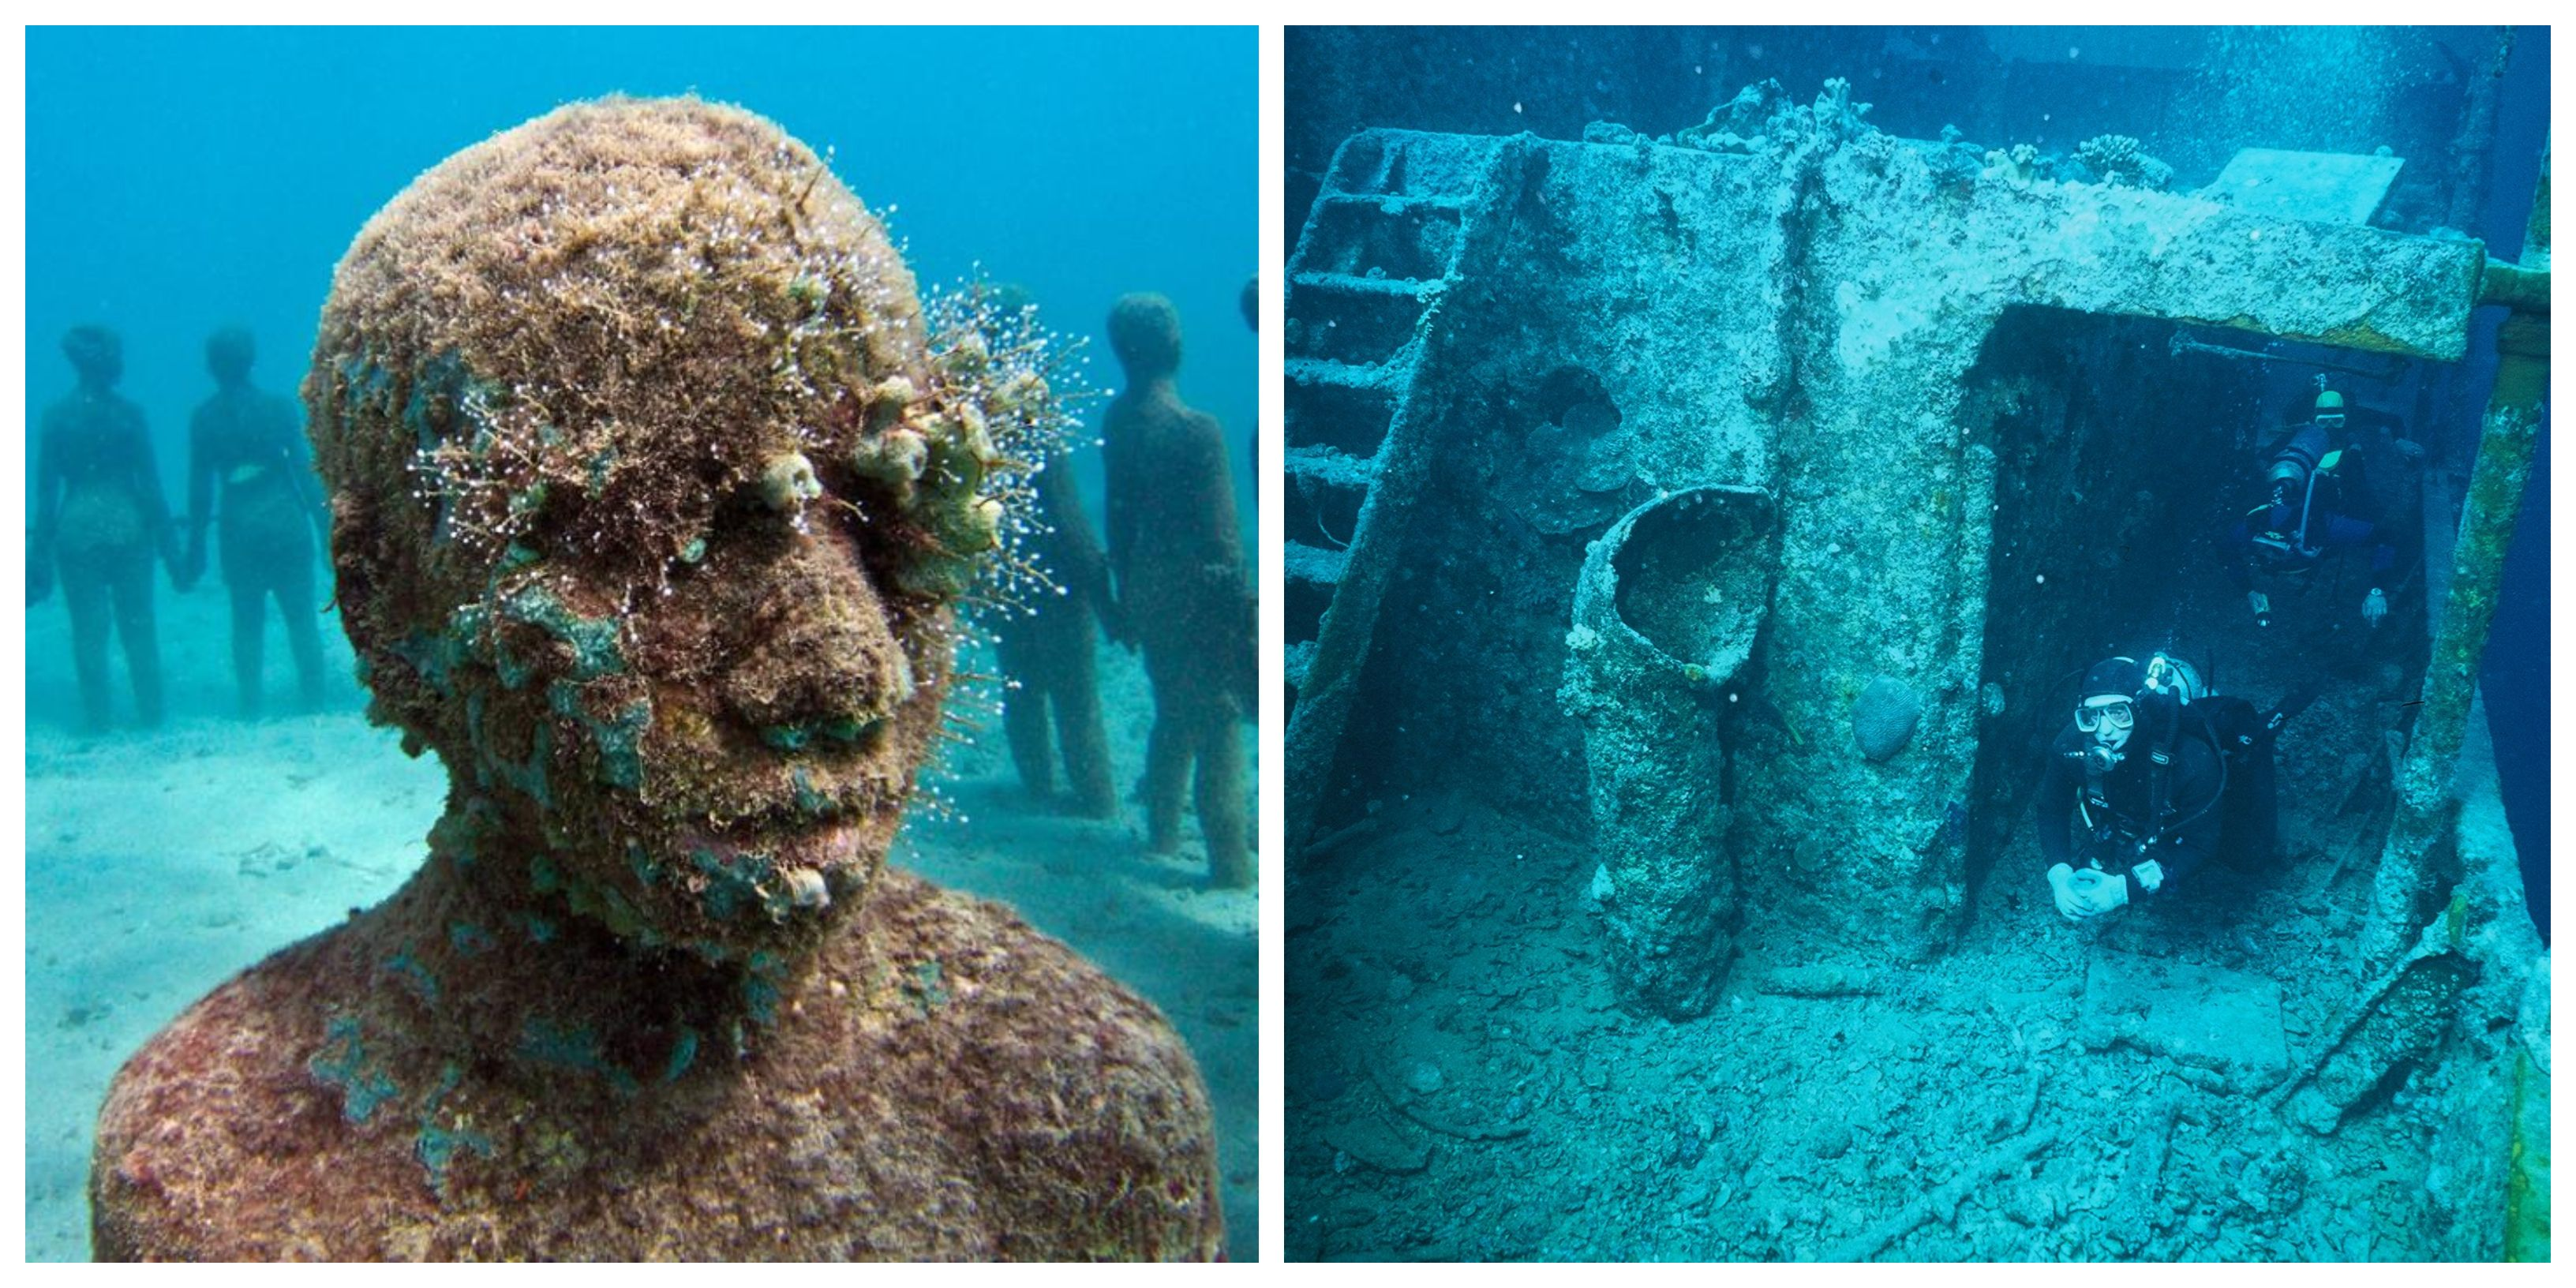 25 Rare Pictures Of Sunken Ships Most Have Never Seen Before